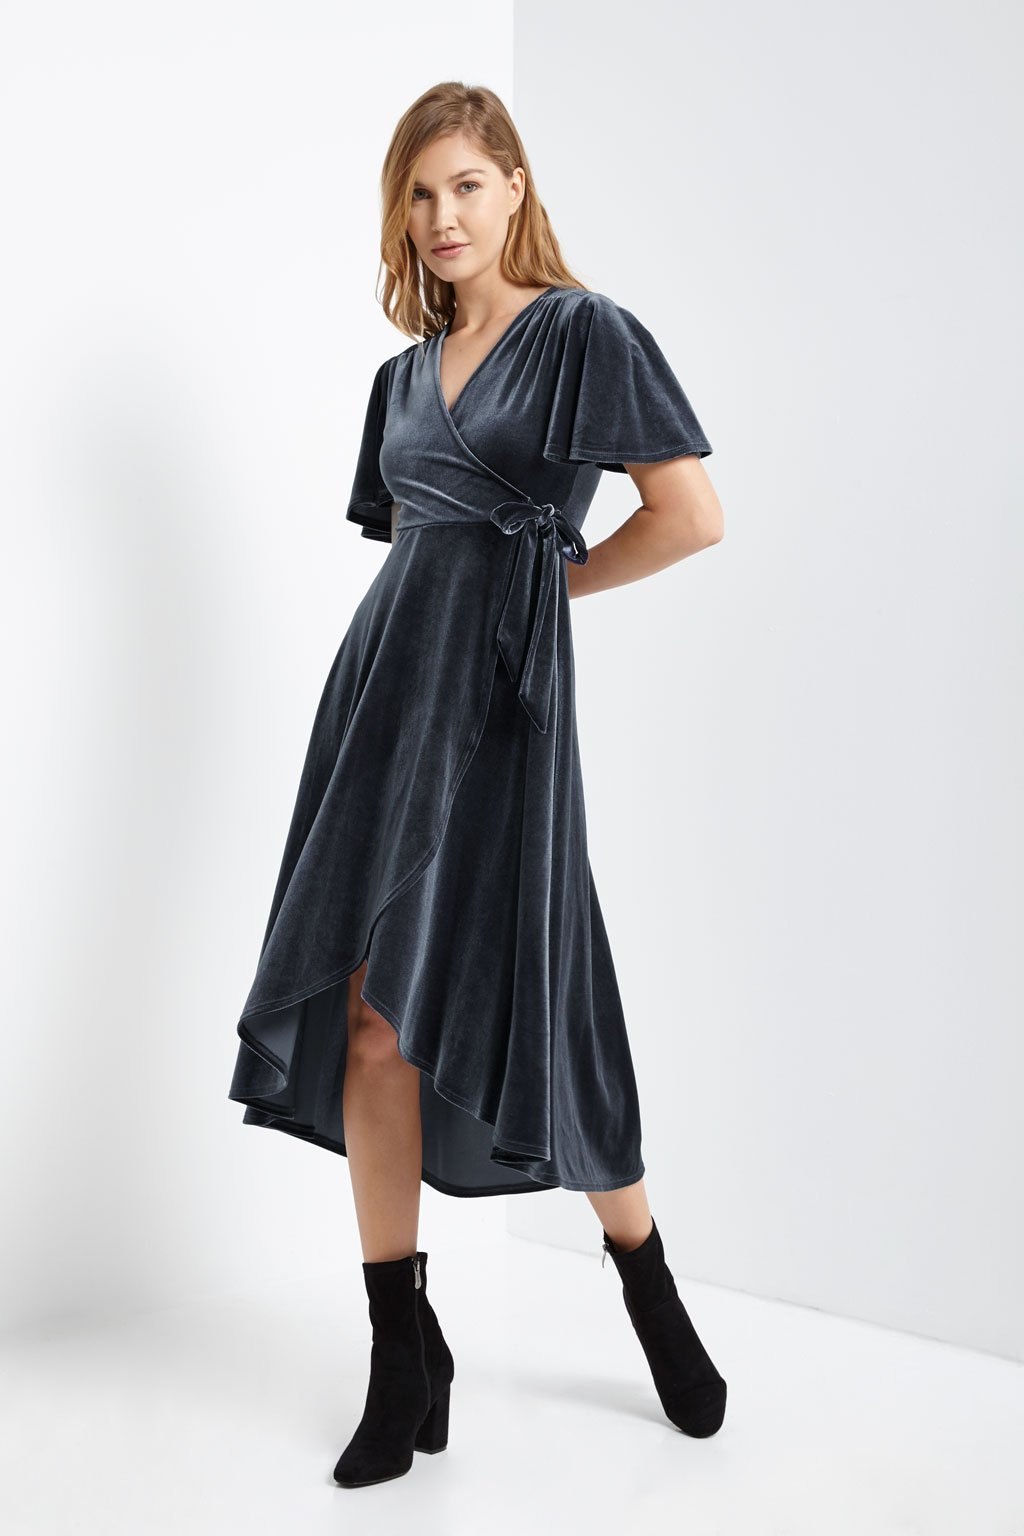 Poshsquare Dress Velvet Side Tie Wrap Dress